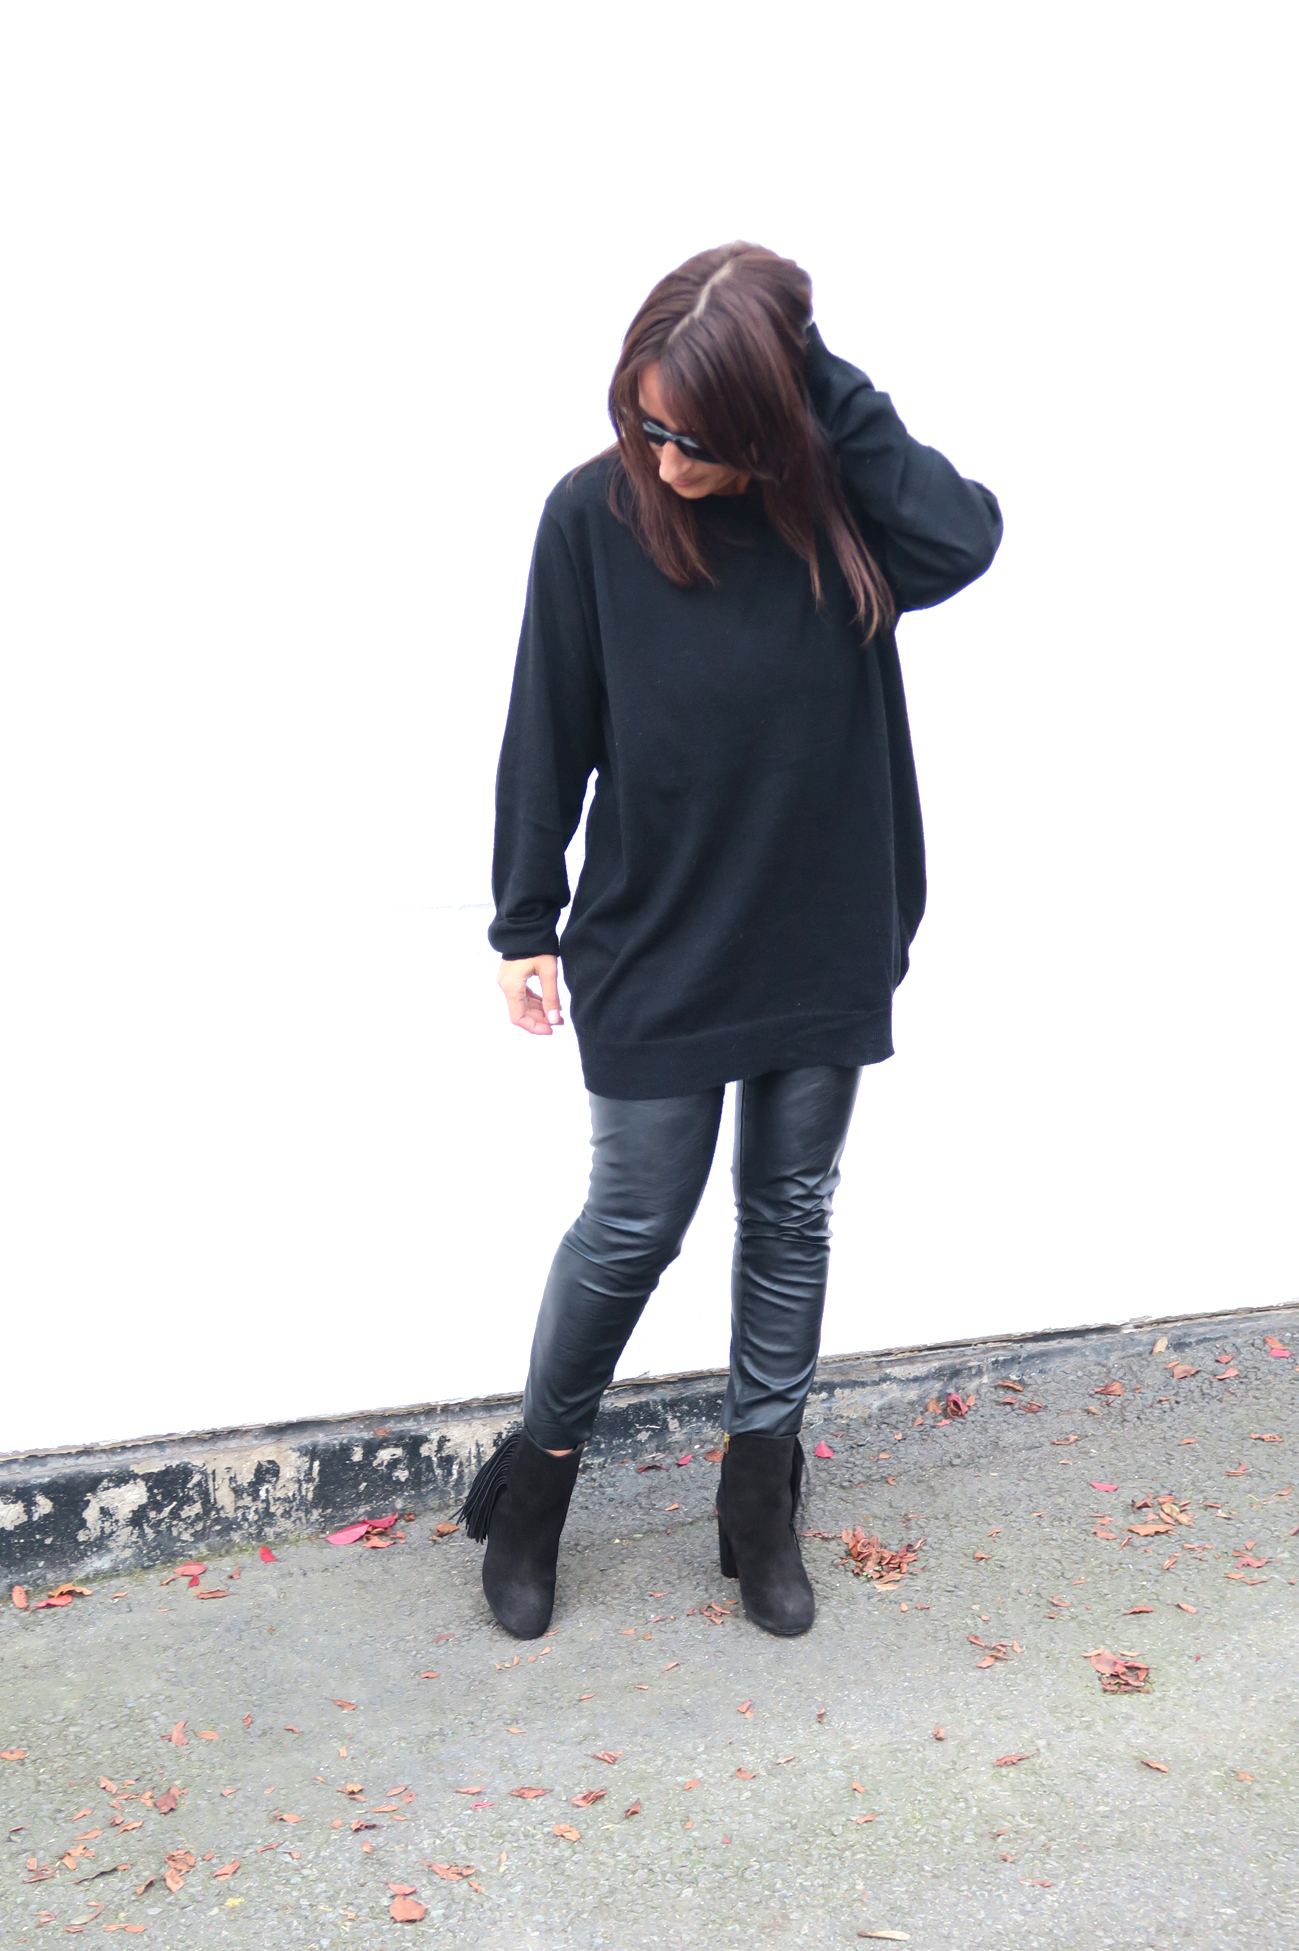 brands4friends-buffalo-boots-fringe-fashionblogger-modeblogger-fashion-style-trend-black-outfit-7